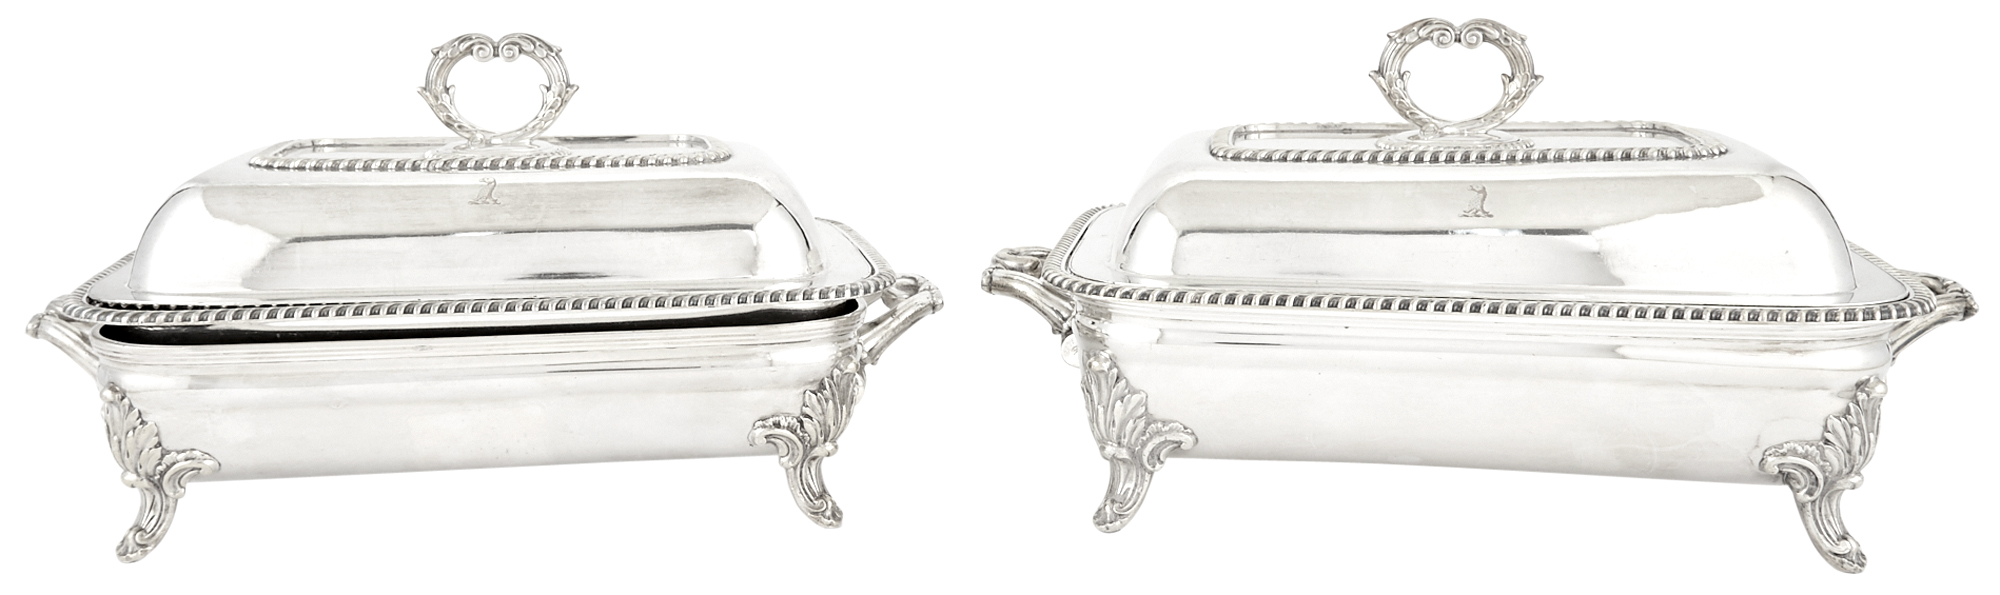 Lot image - Pair of Regency Sheffield Silver Plate Covered Entree Dishes on Stands